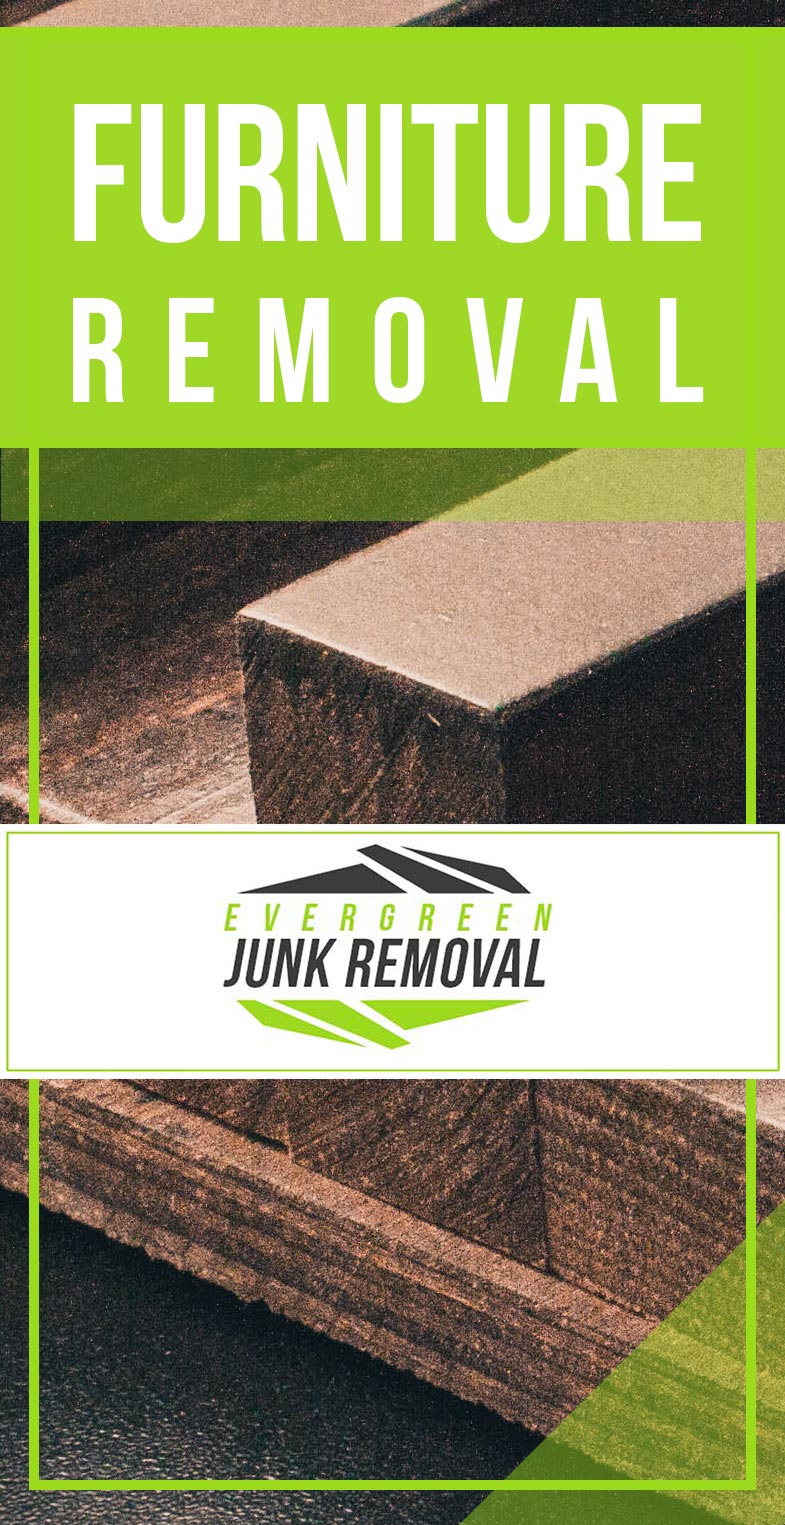 Junk Removal Broadview Park Furniture Removal